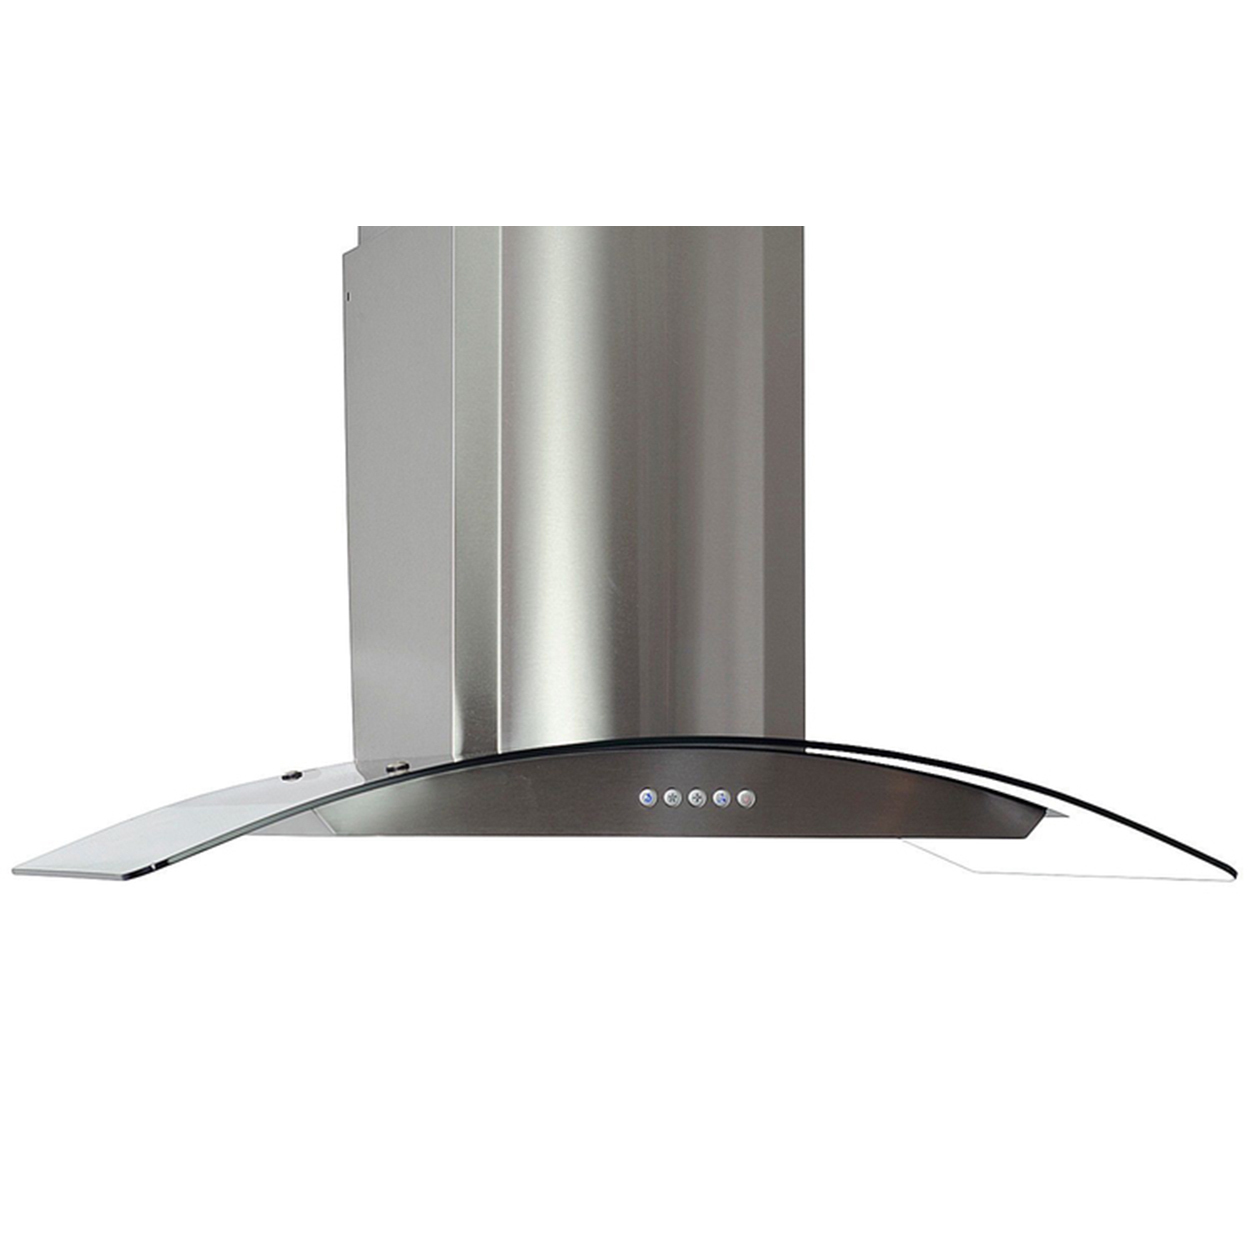 Wall Exhaust Hood ~ Cosmo appliances quot wall mount range hood a